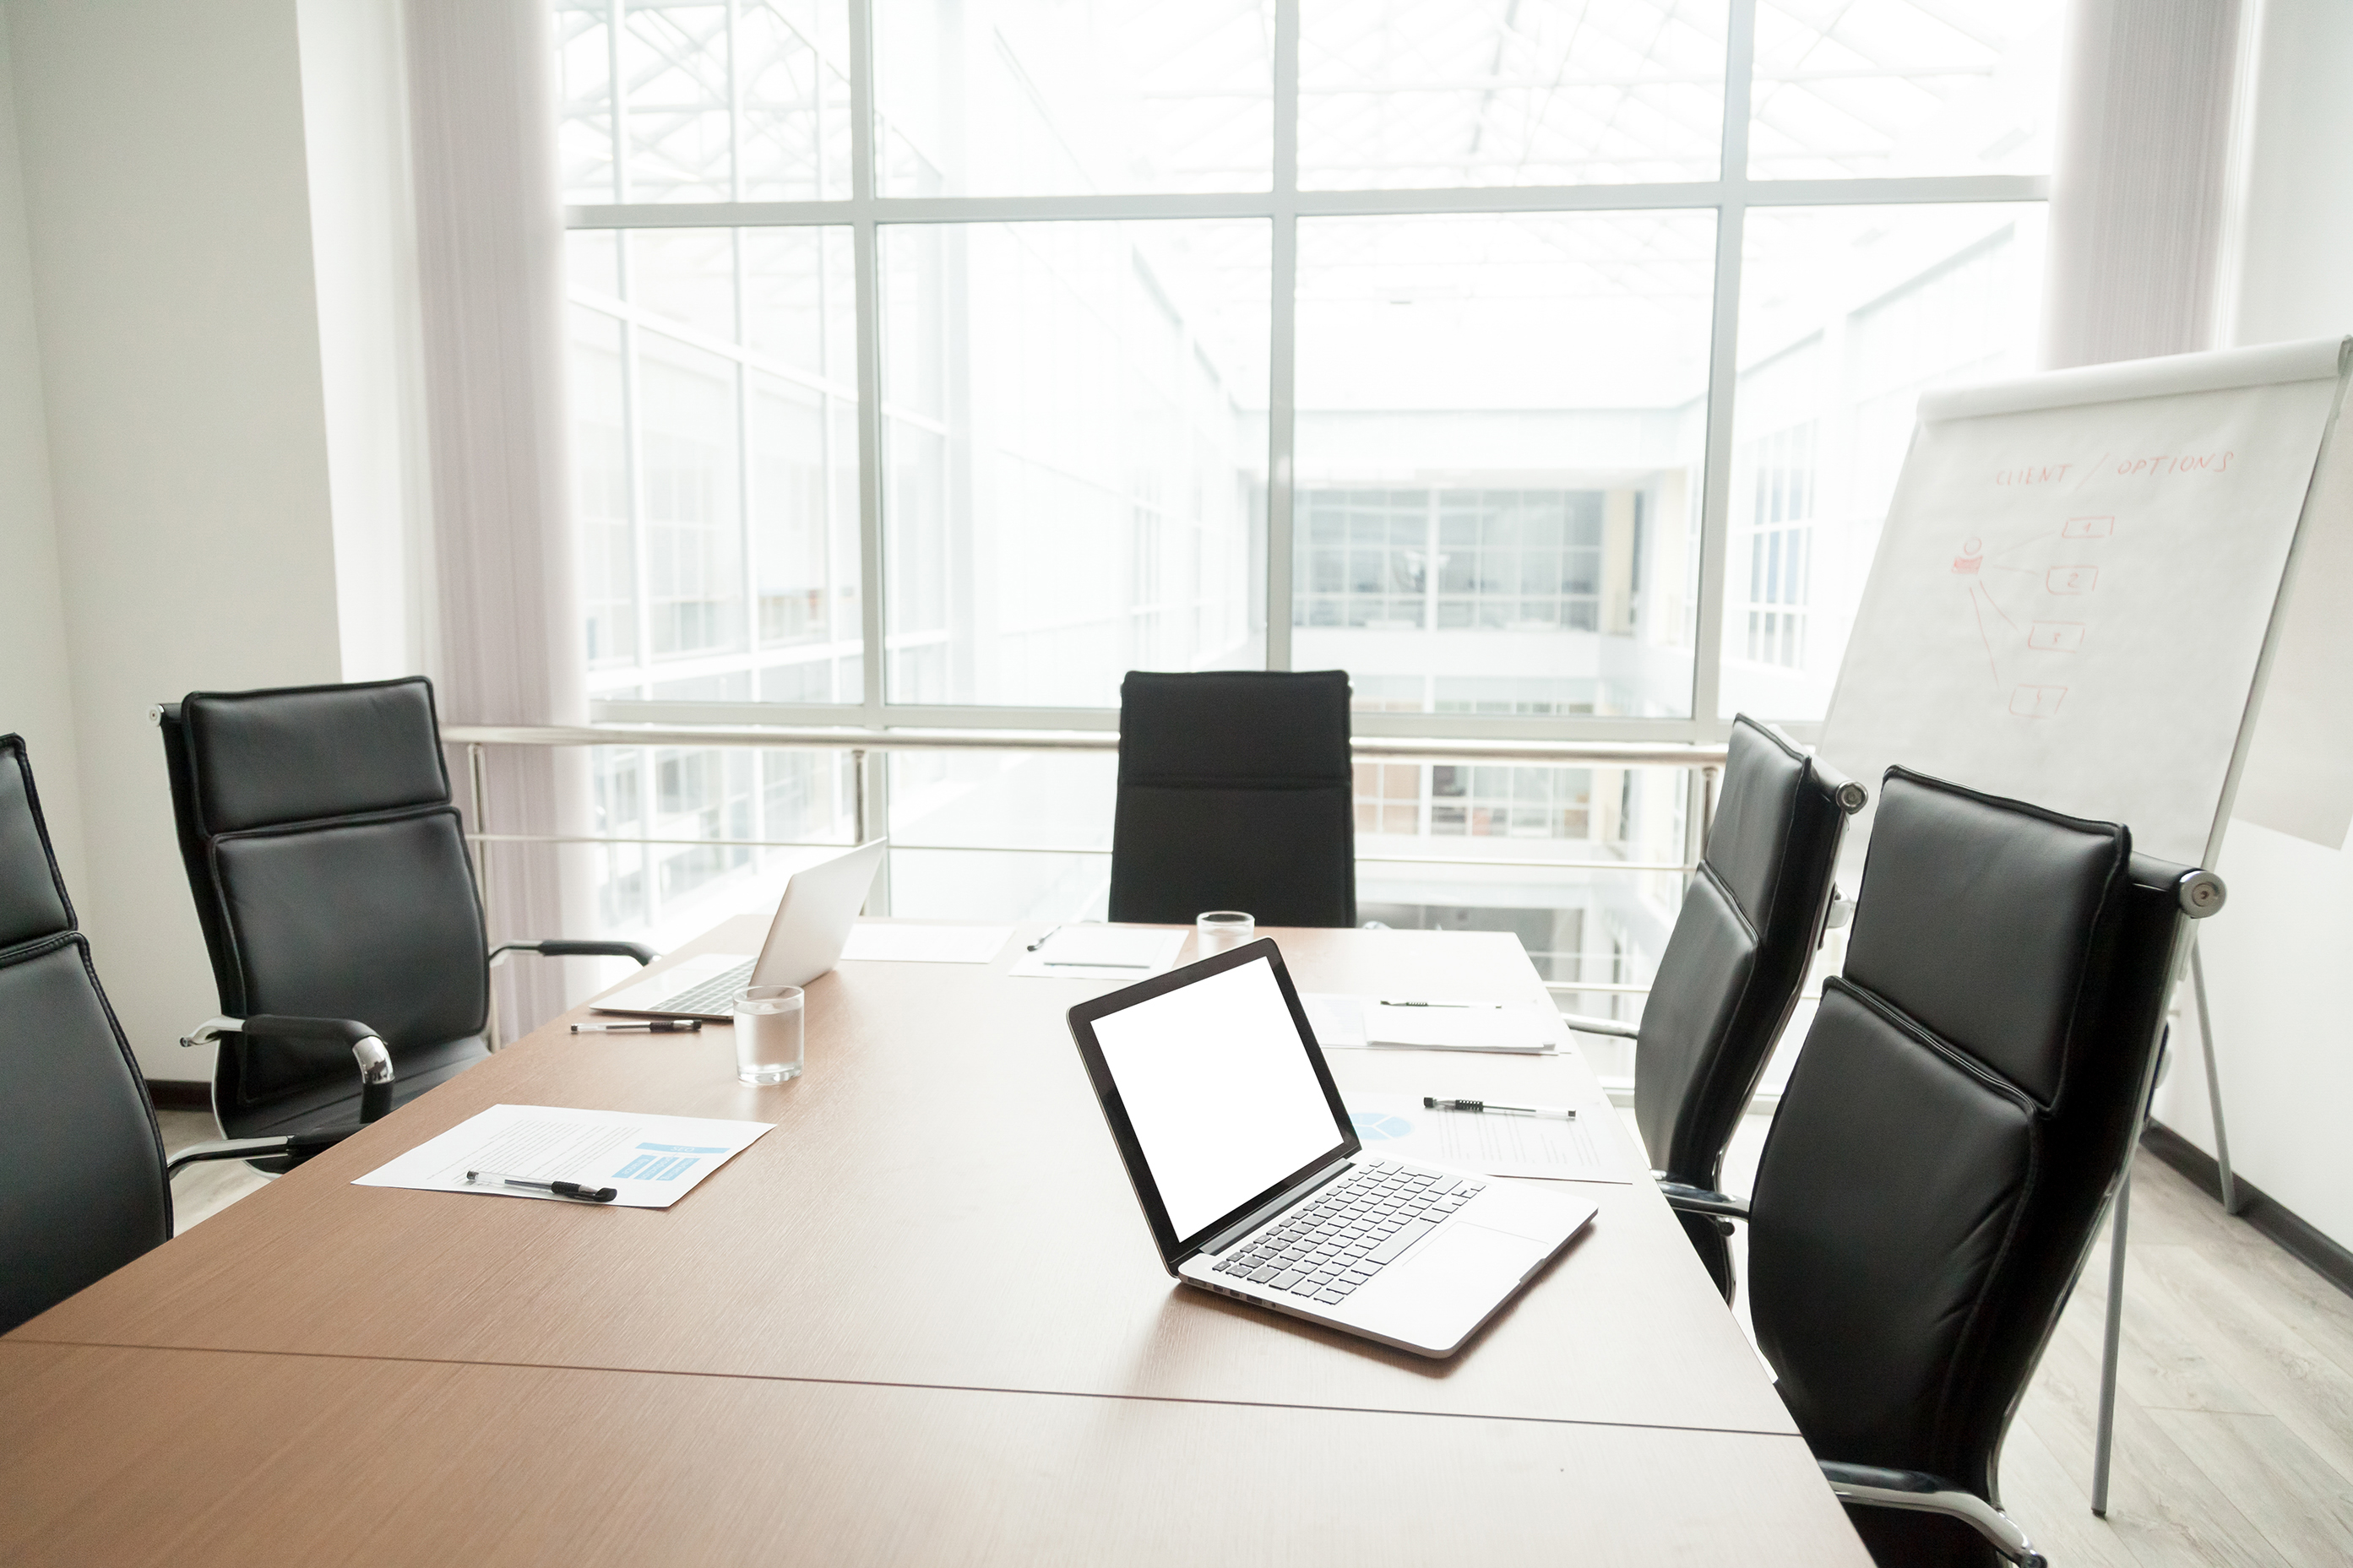 Photo of an empty conference room with an open laptop, blank paper and a presentation-size note board.